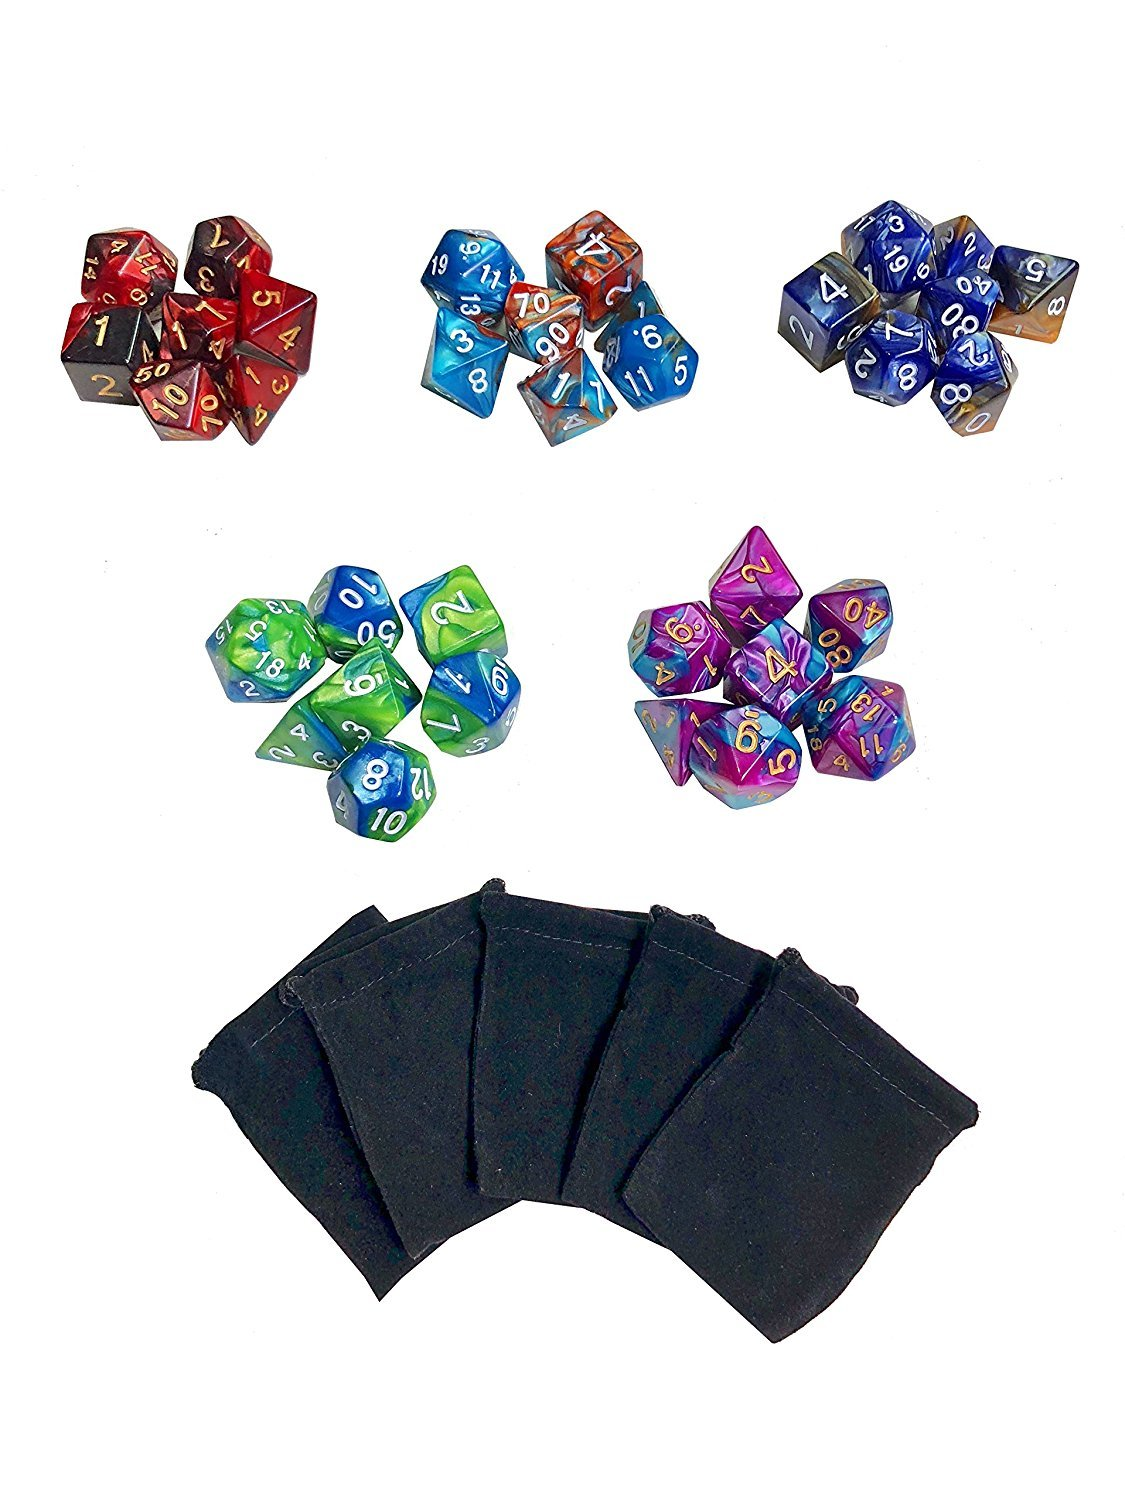 Double-Colors Polyhedral Game Dice with 5 Pack Black Pouches for RPG Dungeons and Dragons Pathfinder DND RPG MTG D20 D12 D10 D8 D4 Table Game XHD 35 Pieces Polyhedral Dice